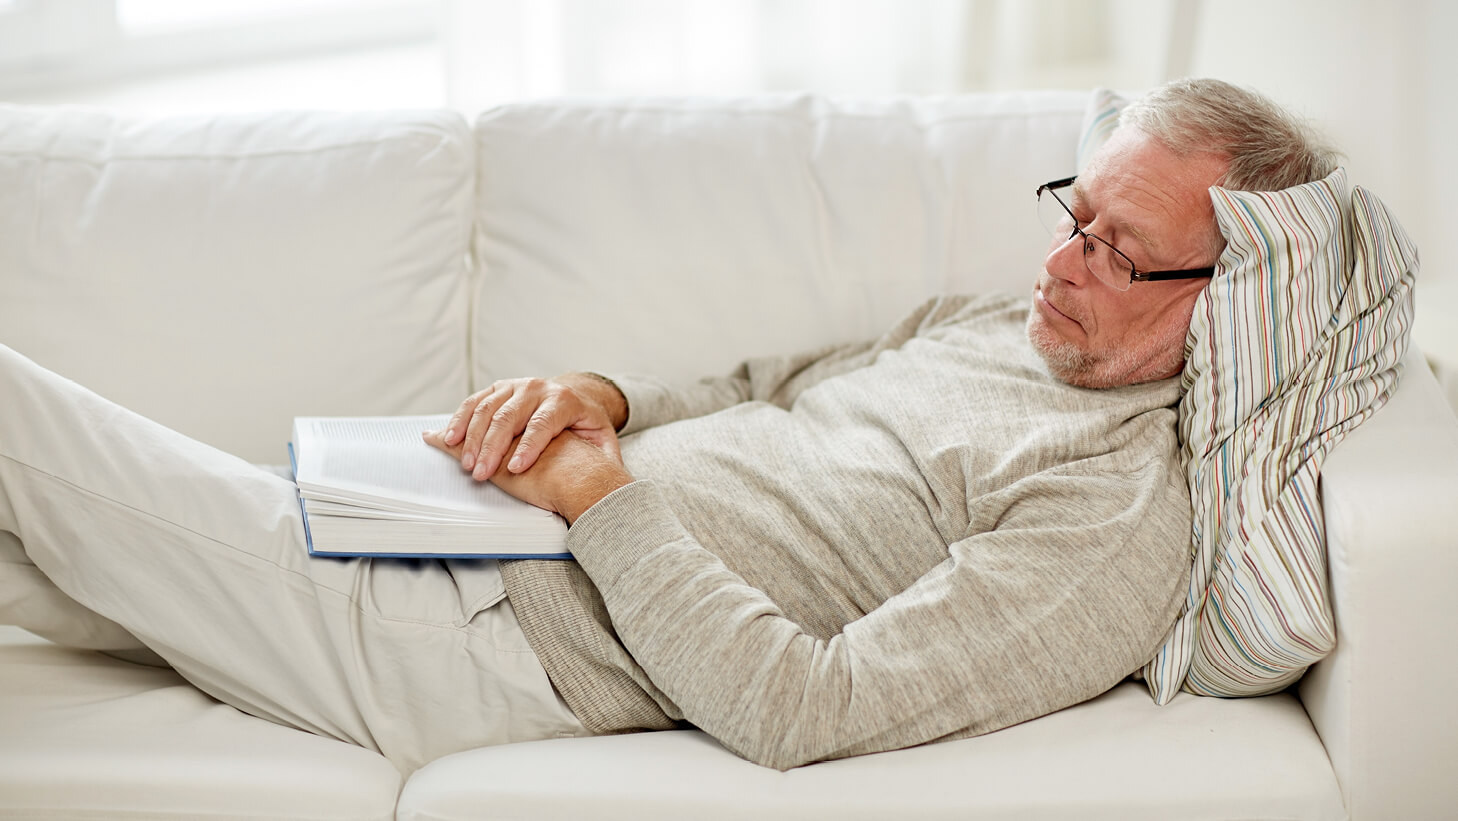 Tired more than usual? It may be hearing loss